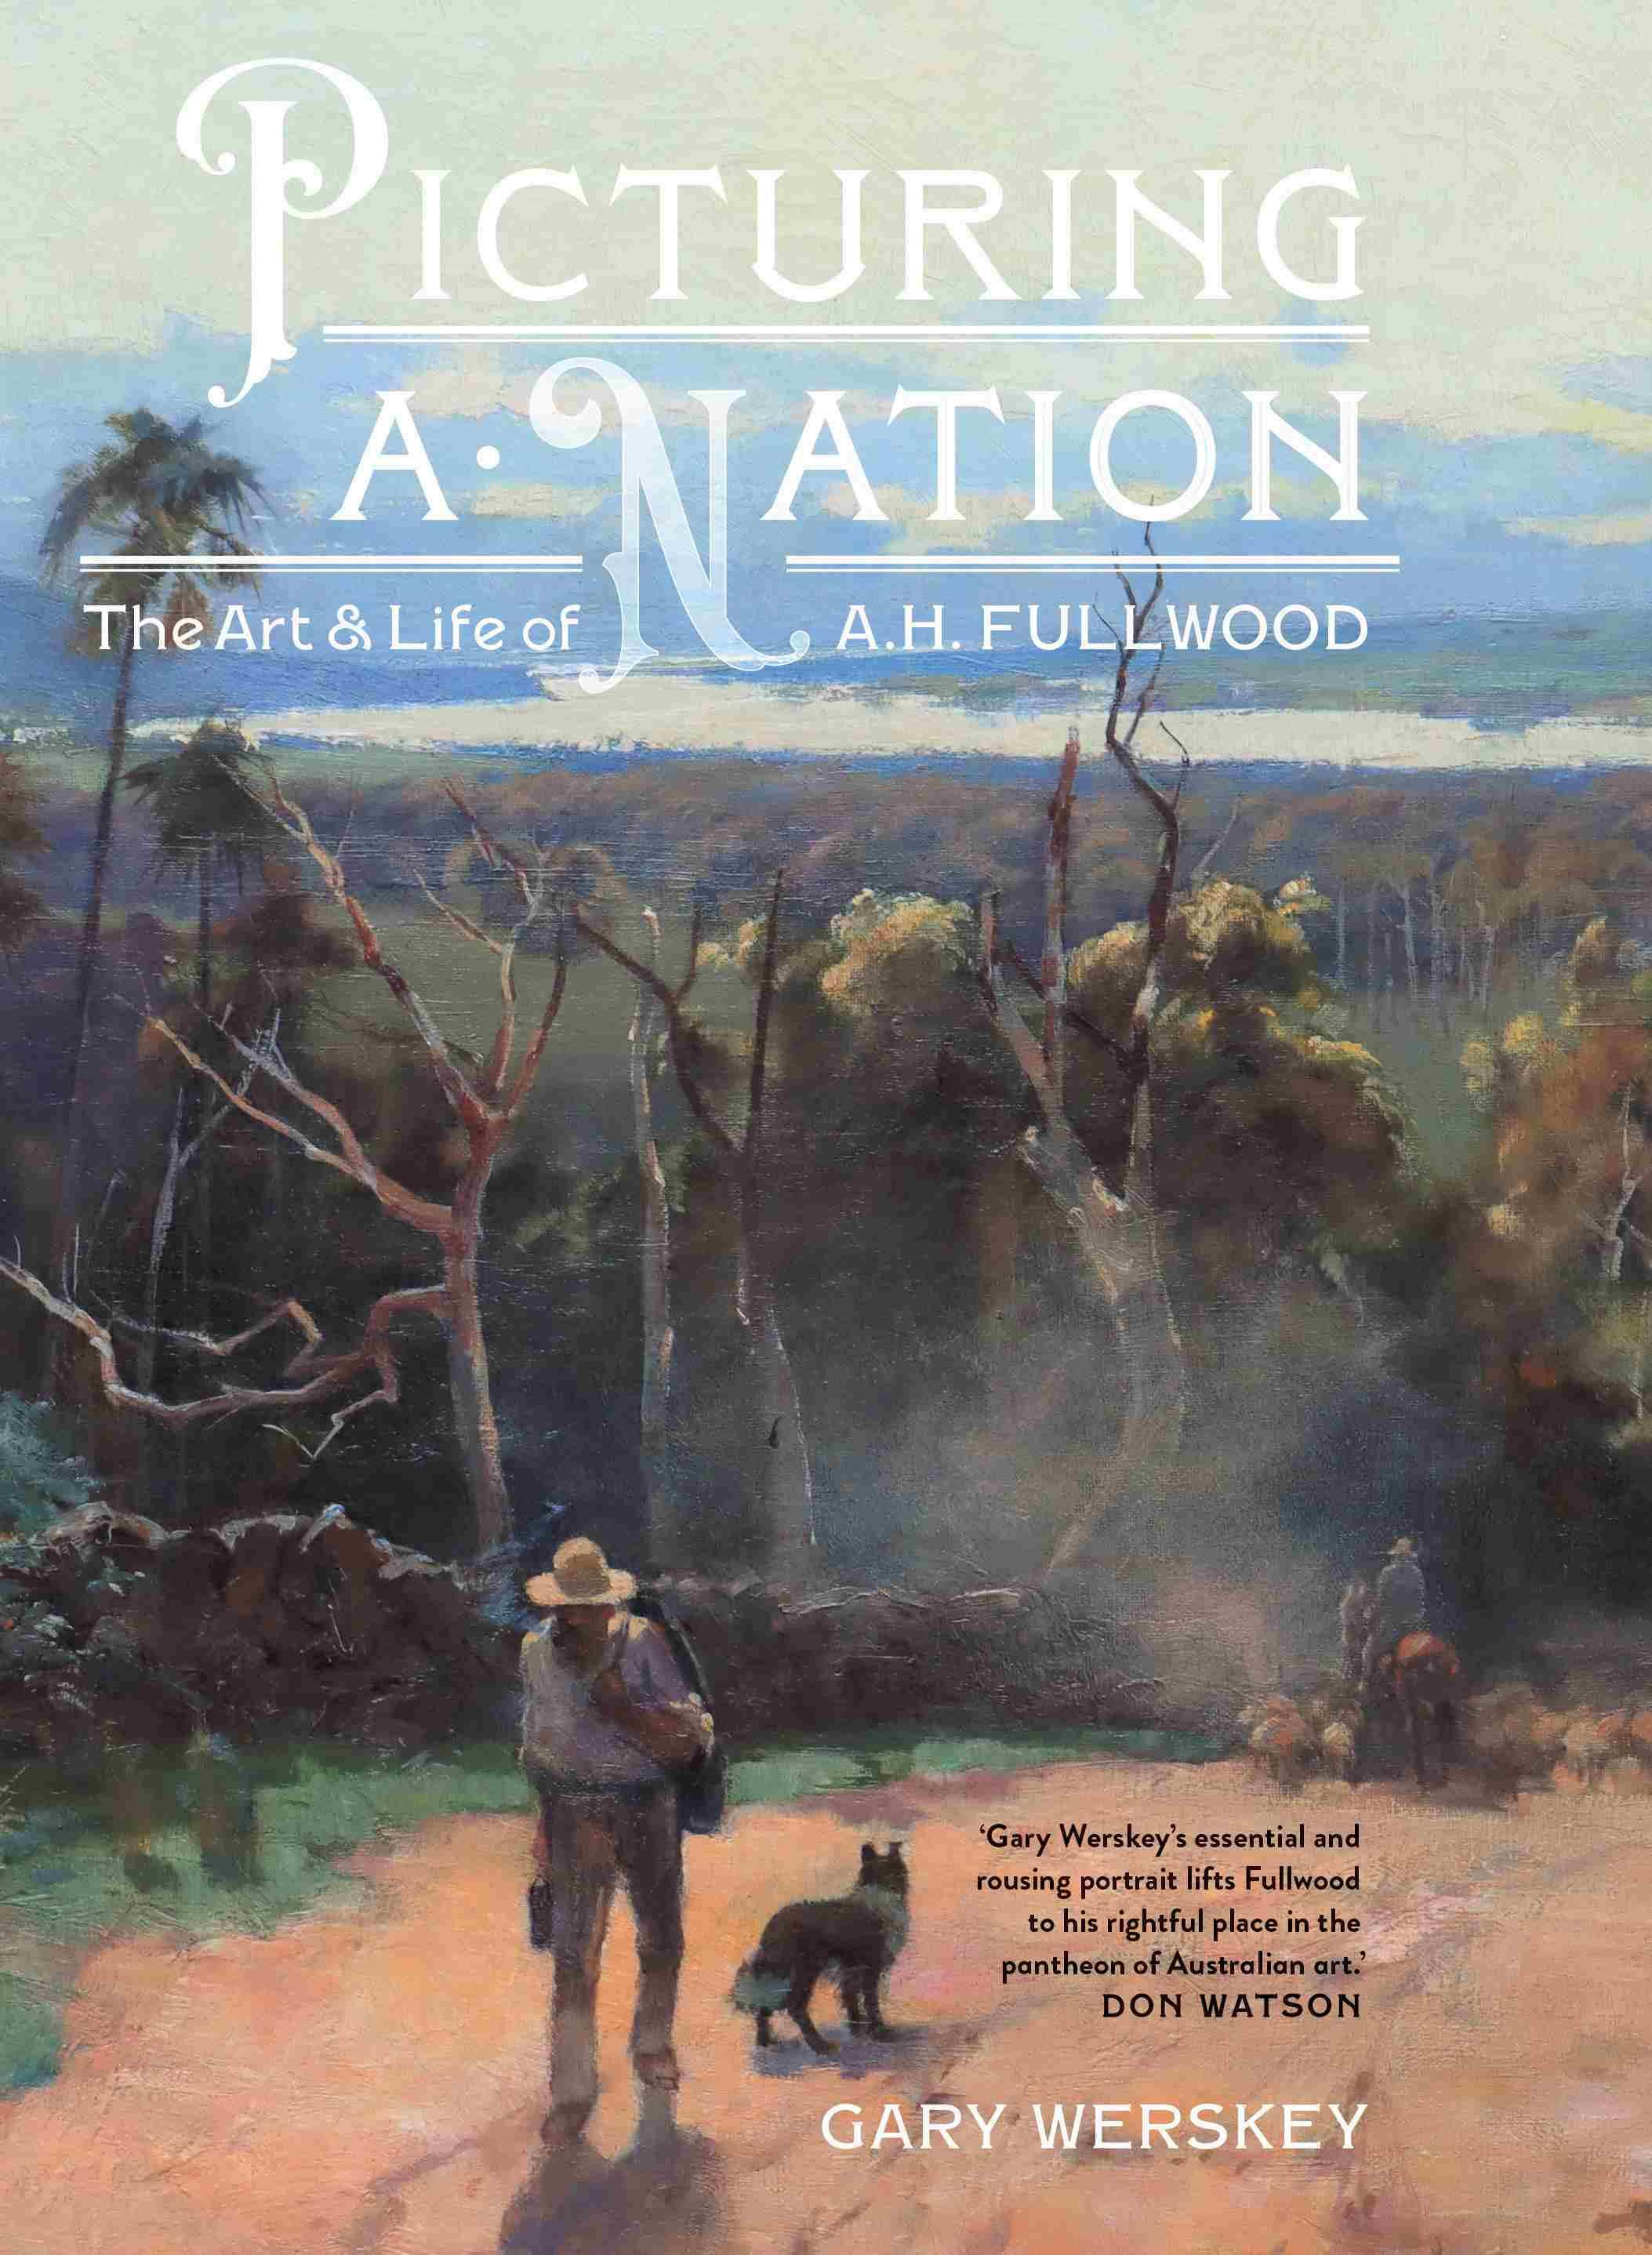 Picturing a Nation - The art and life of A.H. Fullwood